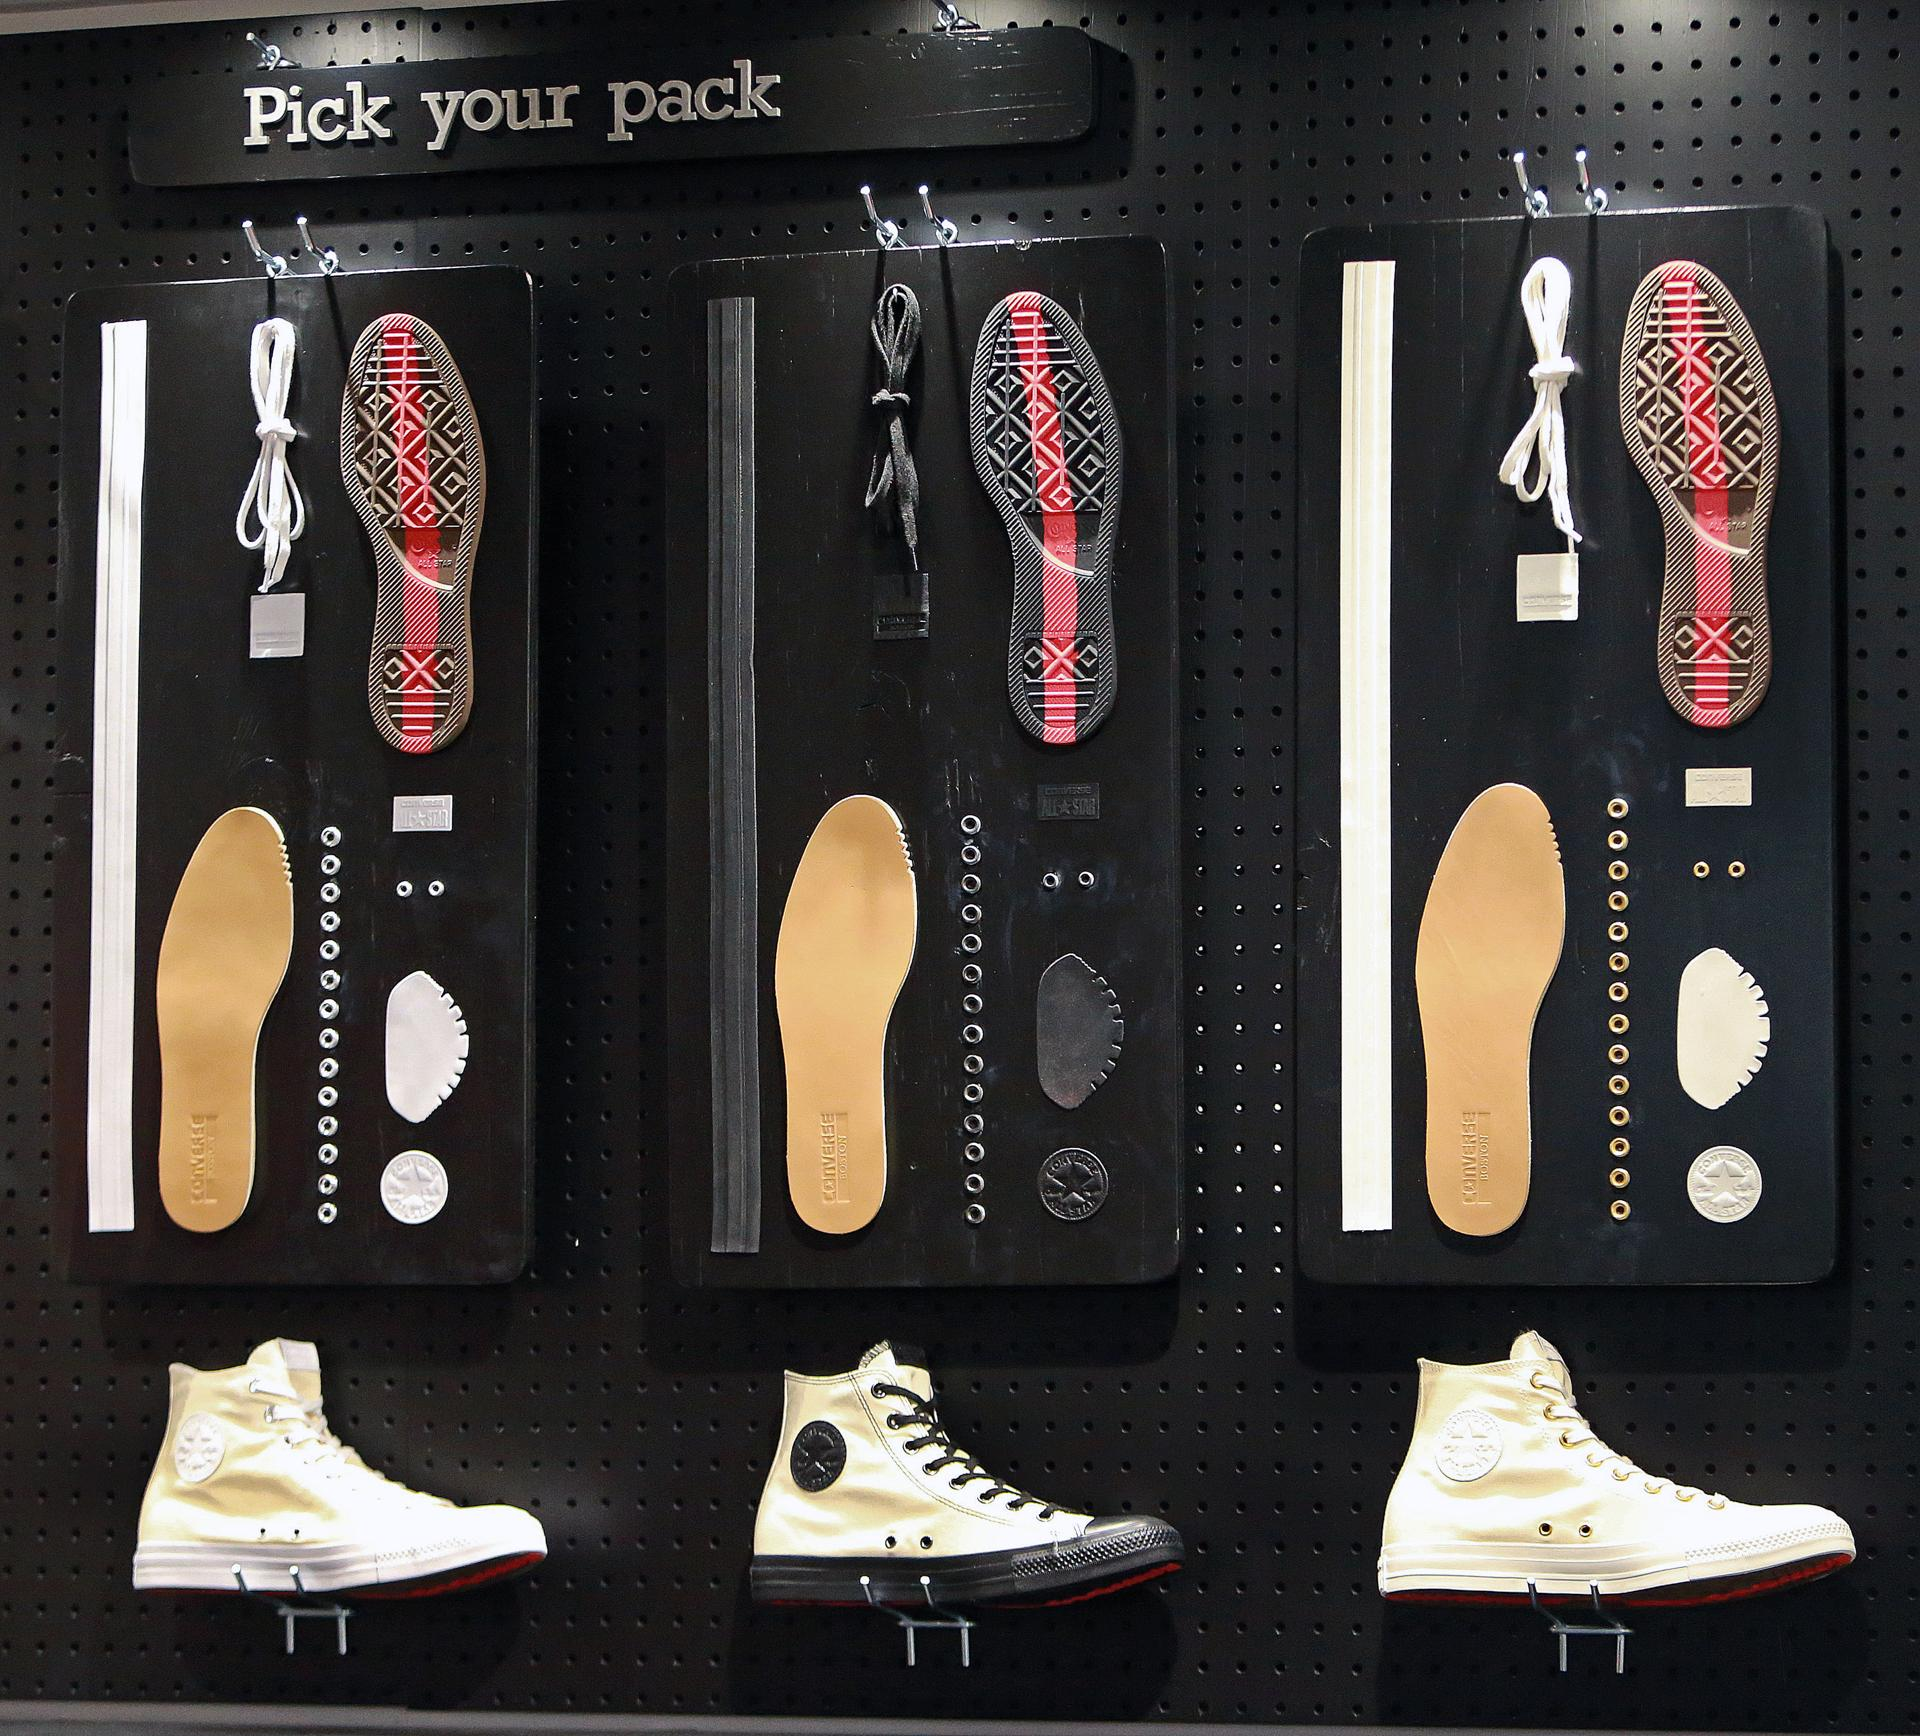 converse outlet store 8tdw  05/11/15: Boston, MA: Converse has moved their headquarters from